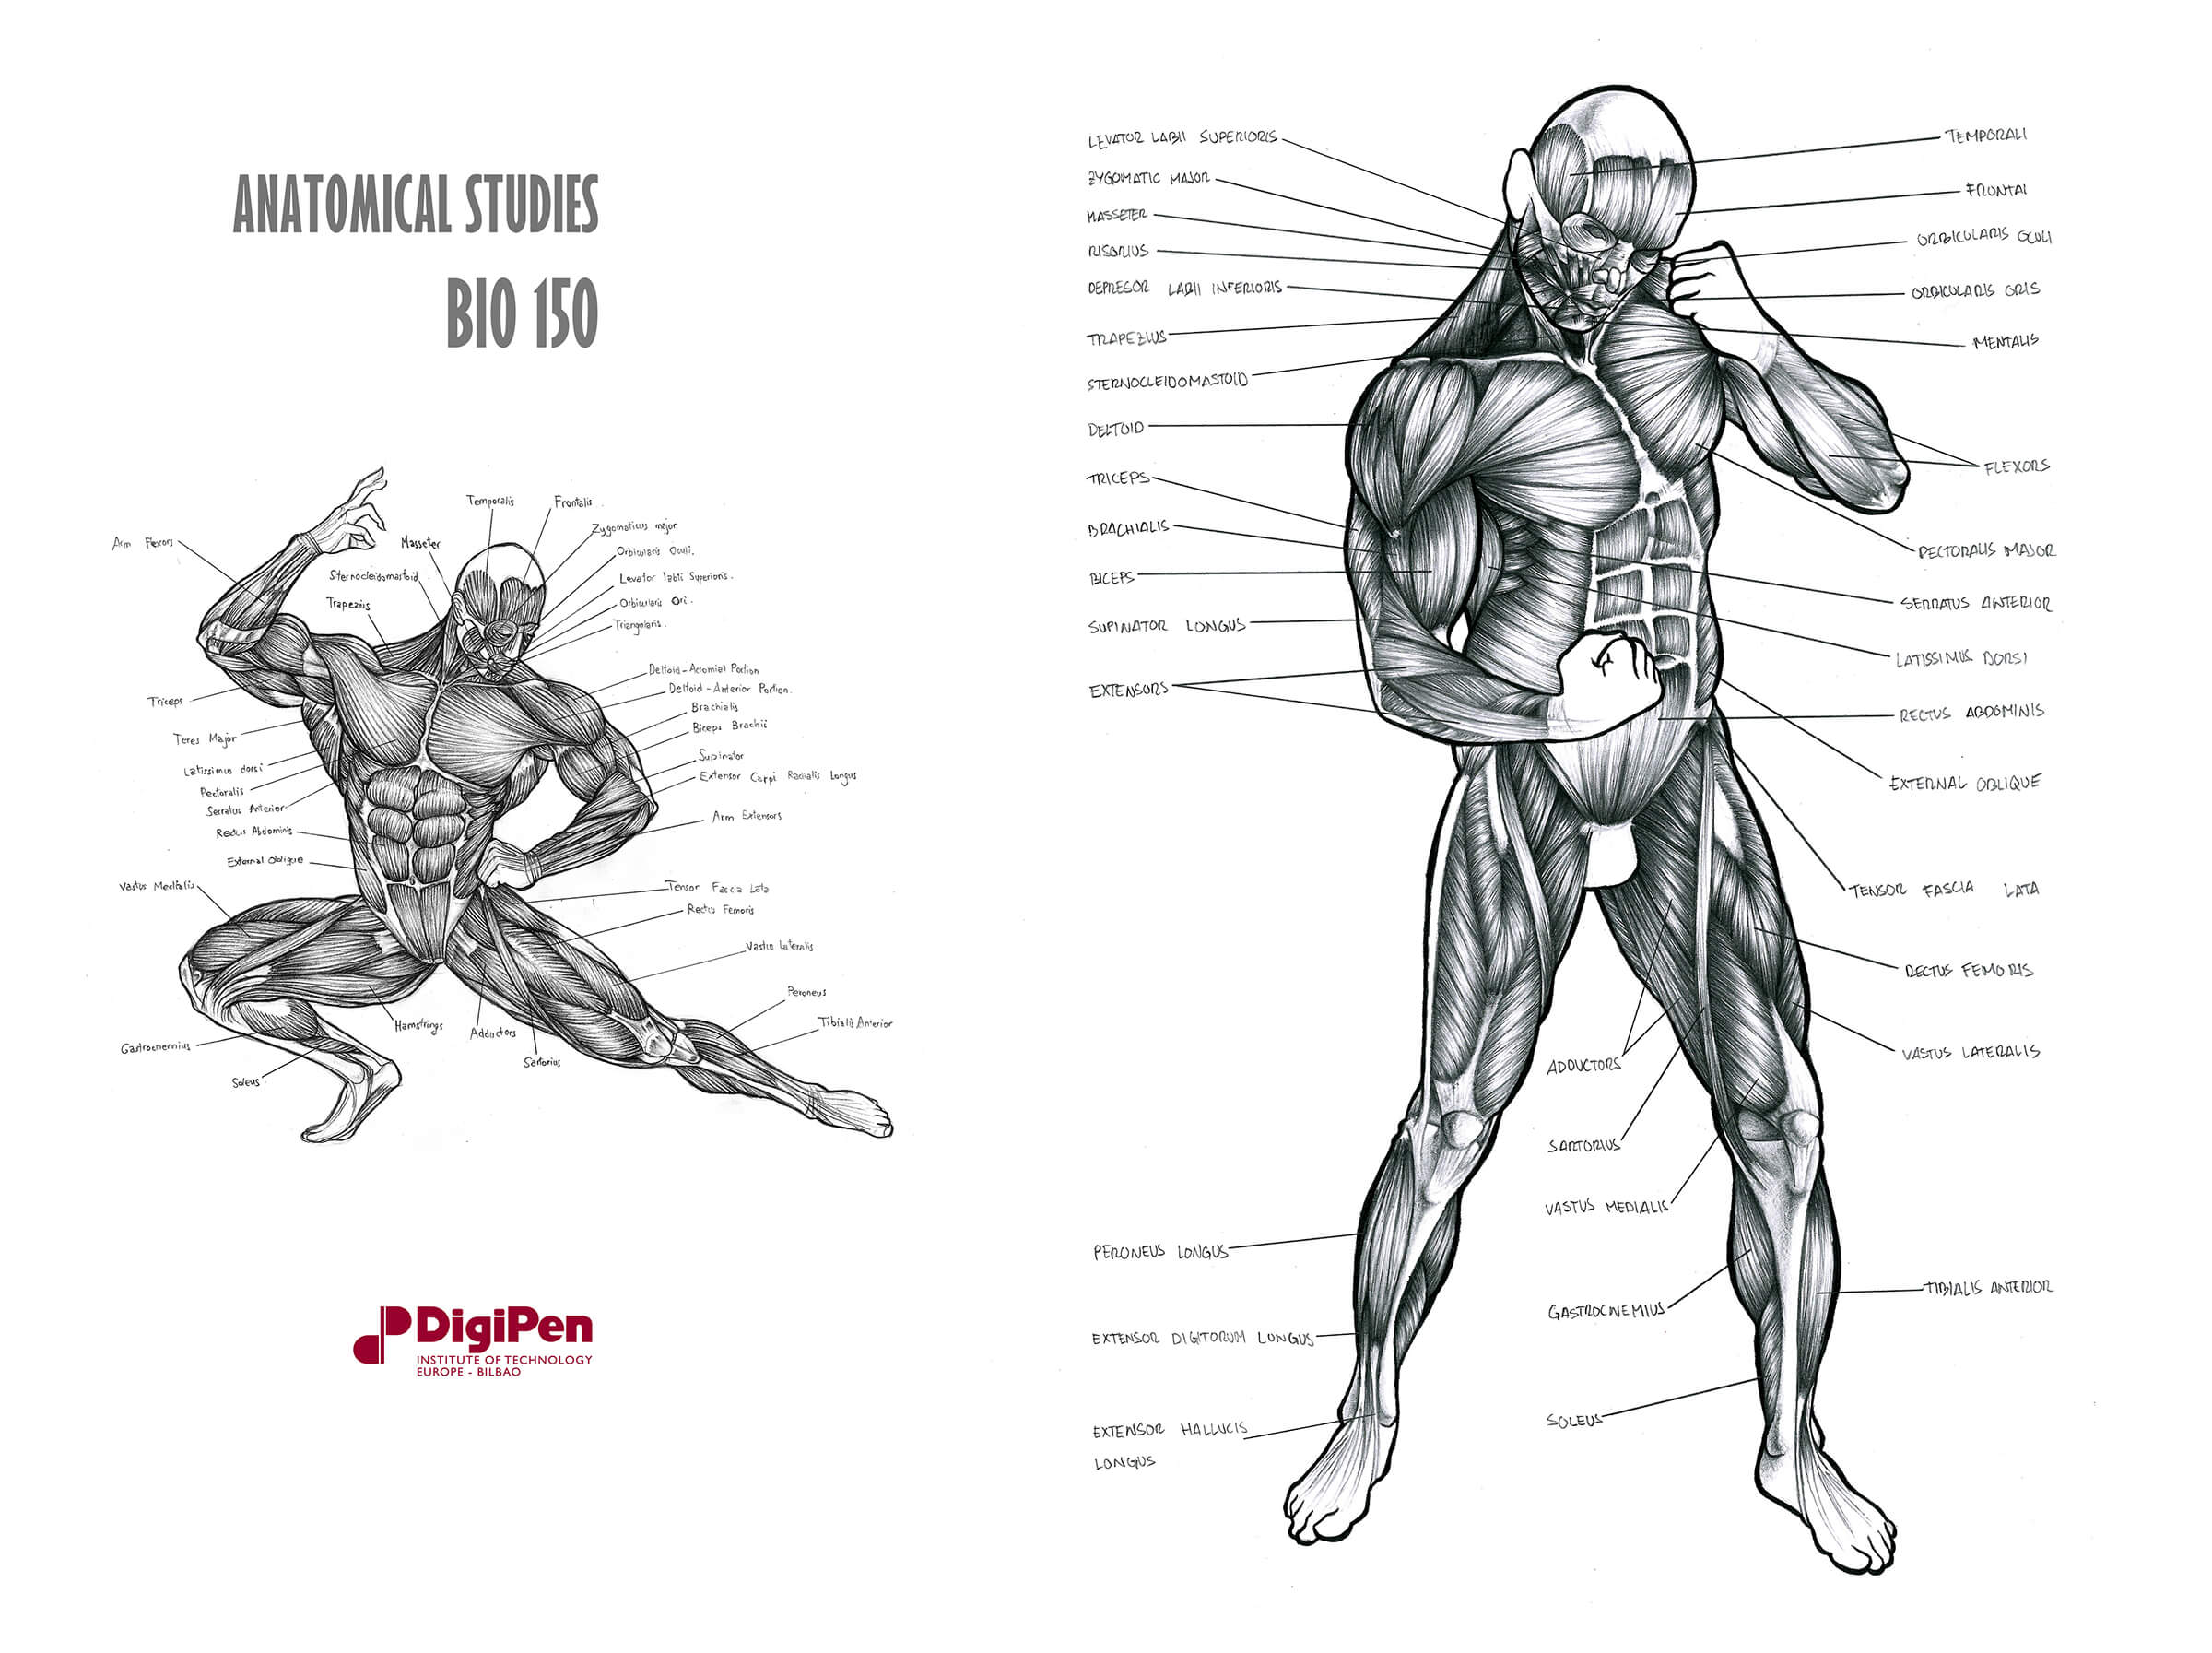 Black-and-white anatomical sketches of the human muscular system, one in a kneeling pose, the other standing.